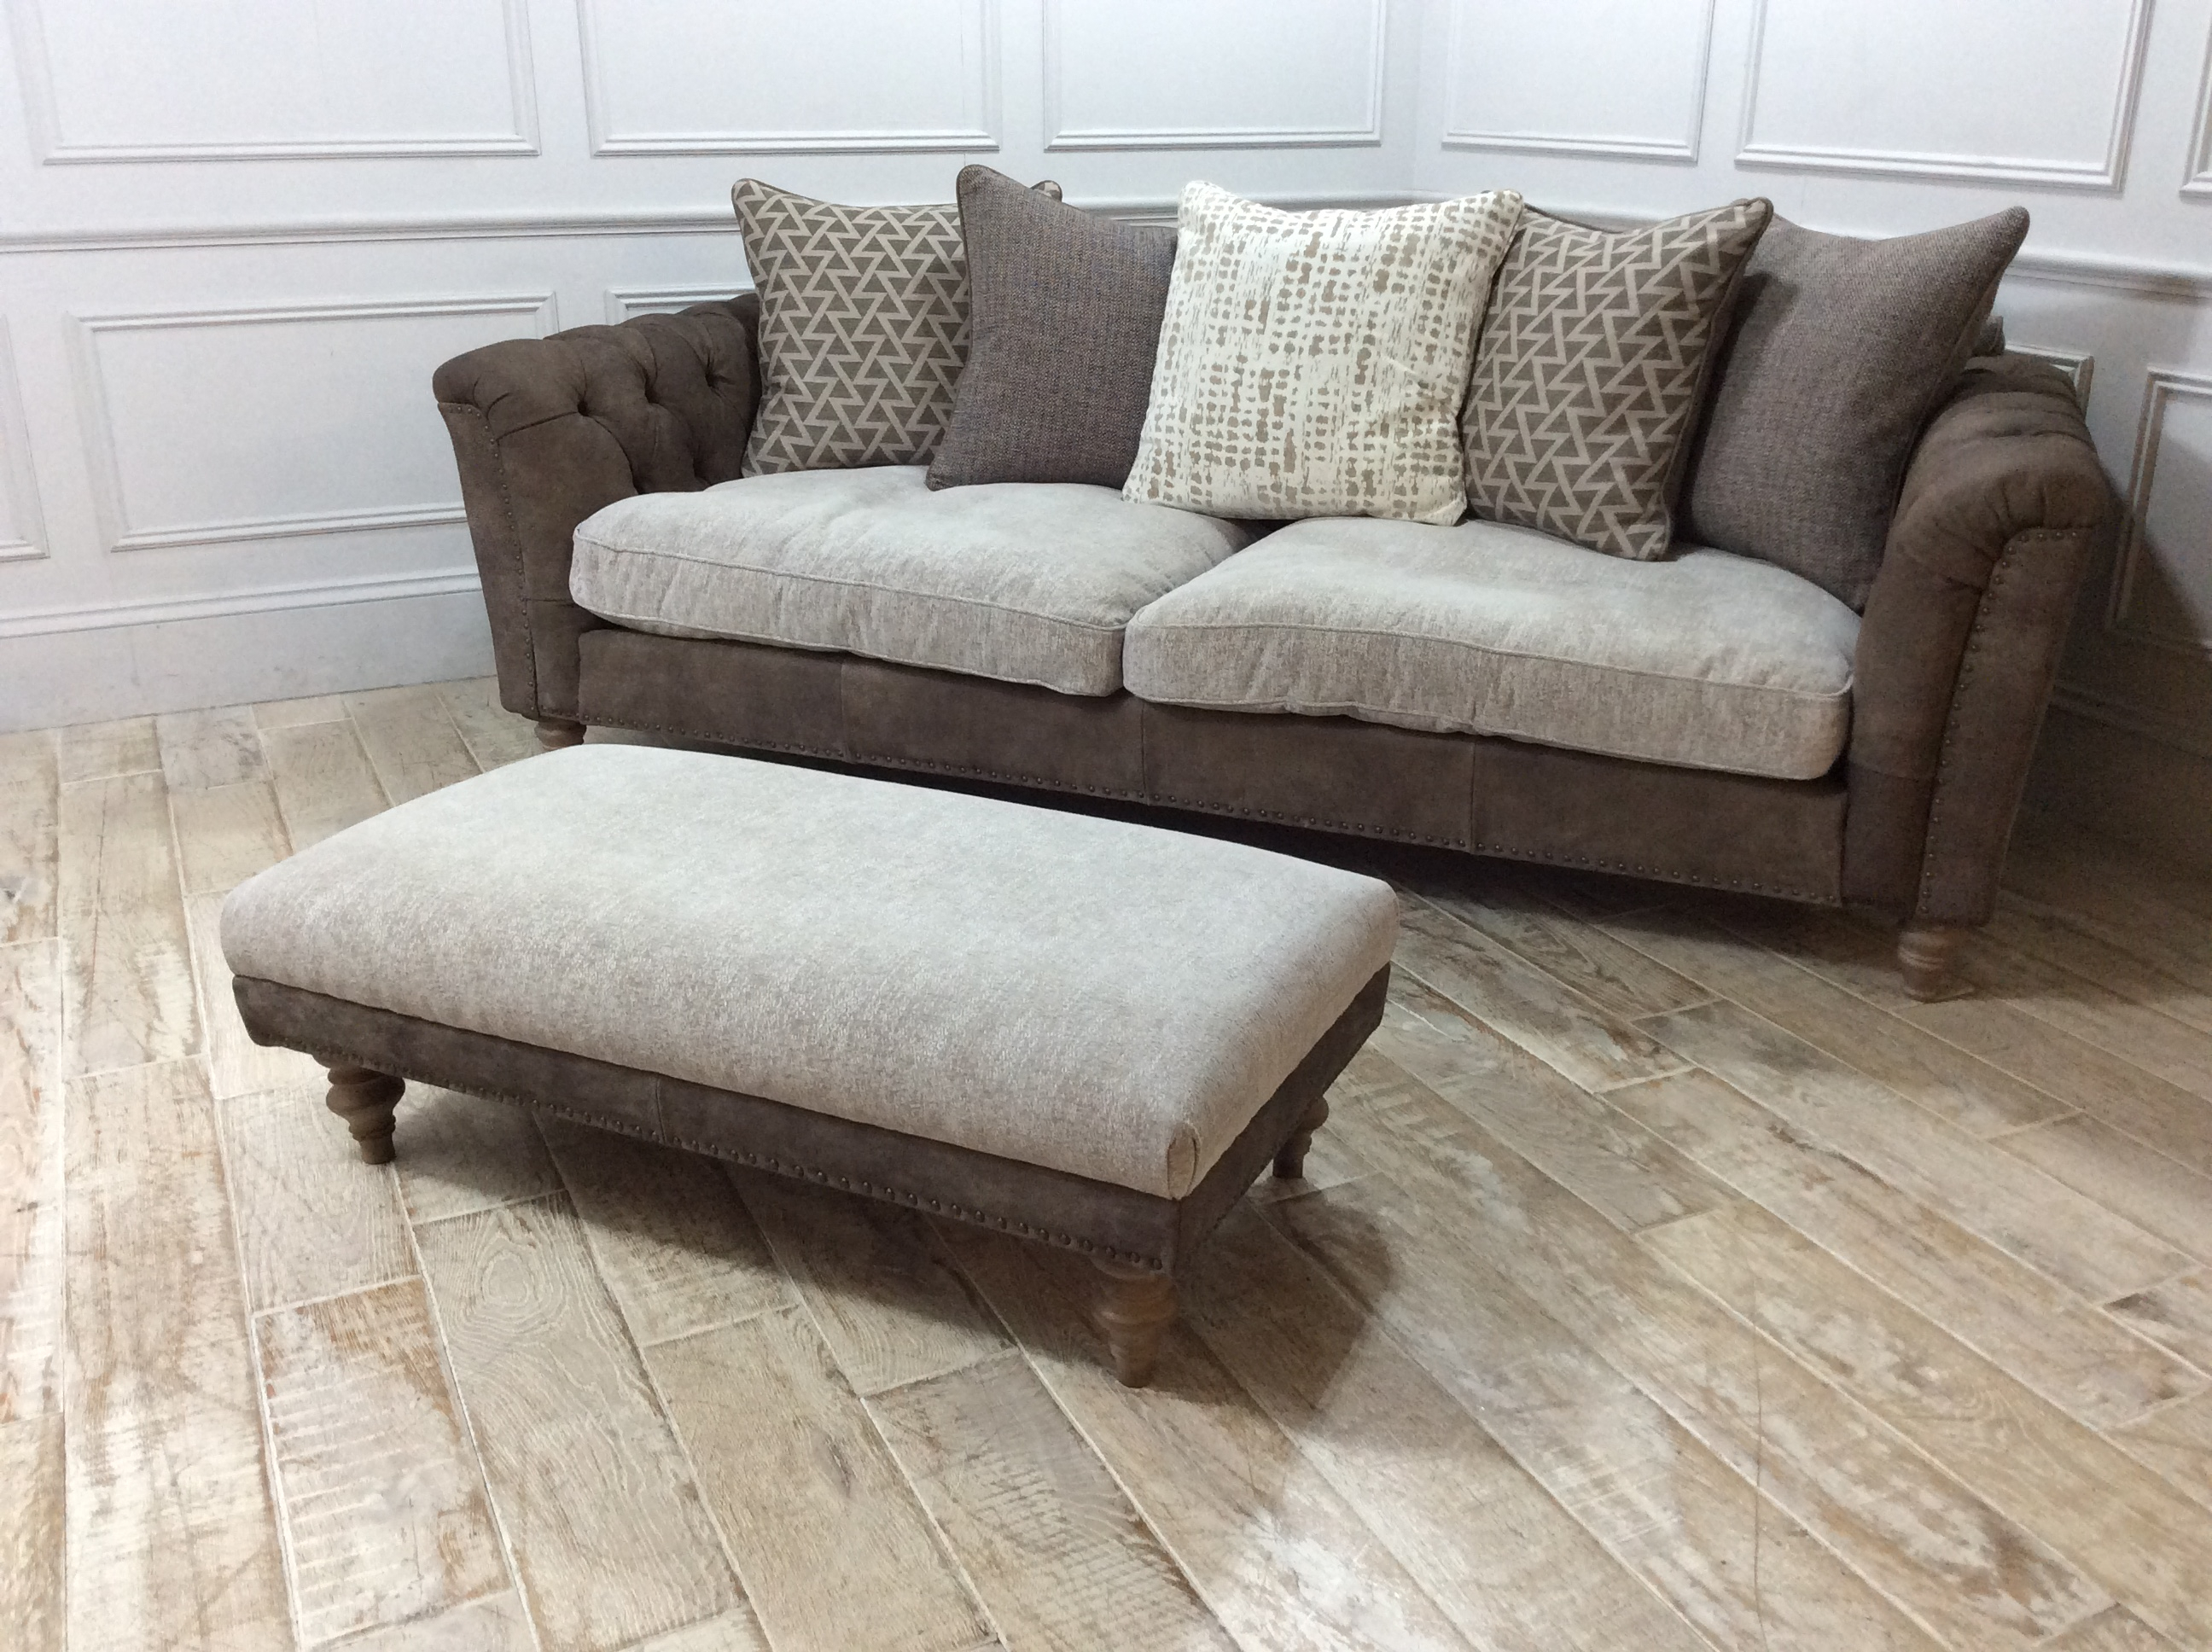 Dorset Leather and Fabric Extra Large Sofa with Footstool in Buffed Putty